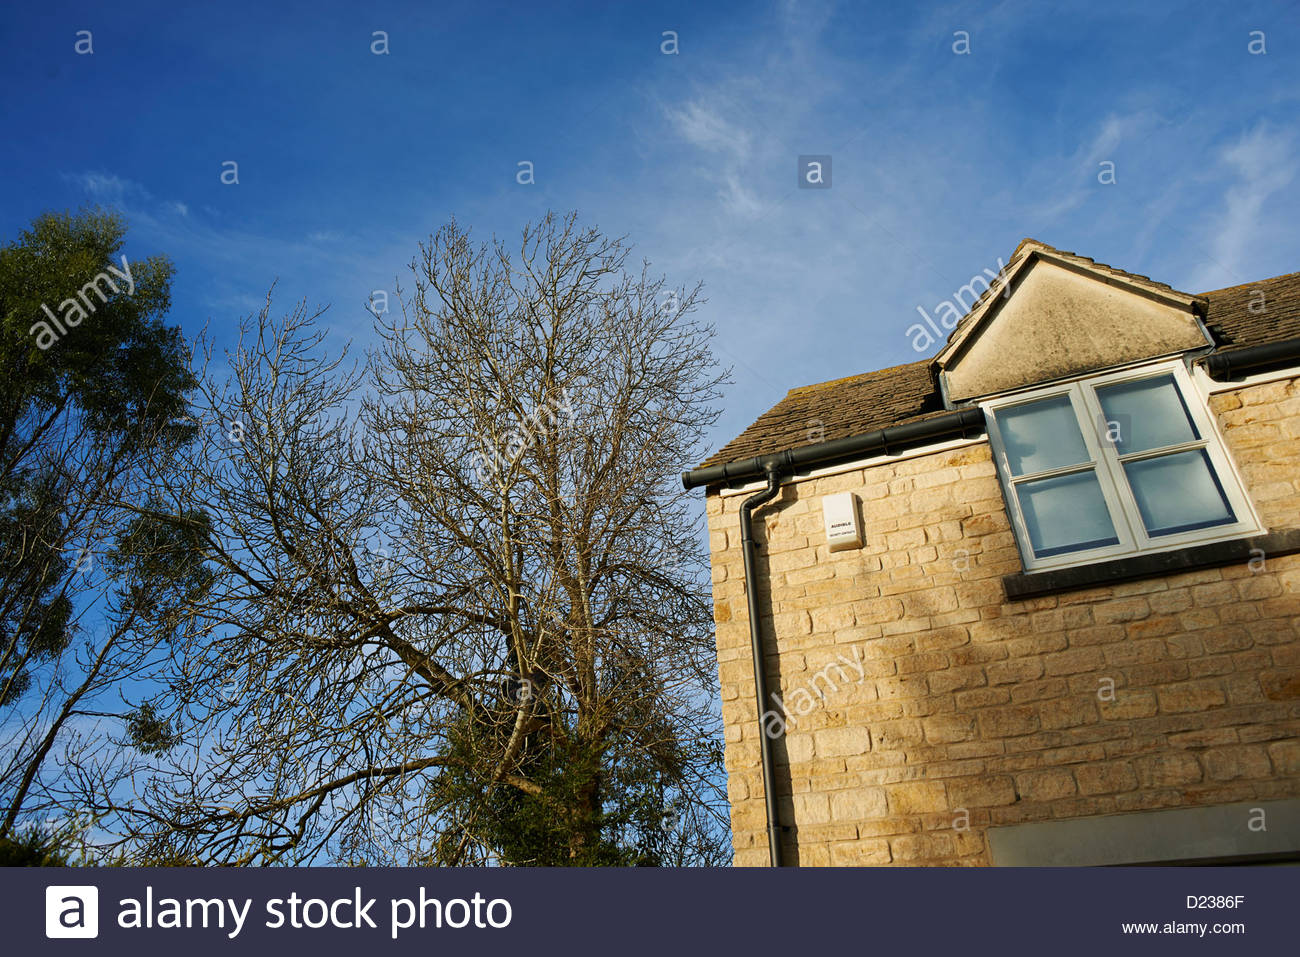 Trees Growing Close To A House That Could Become Damaged